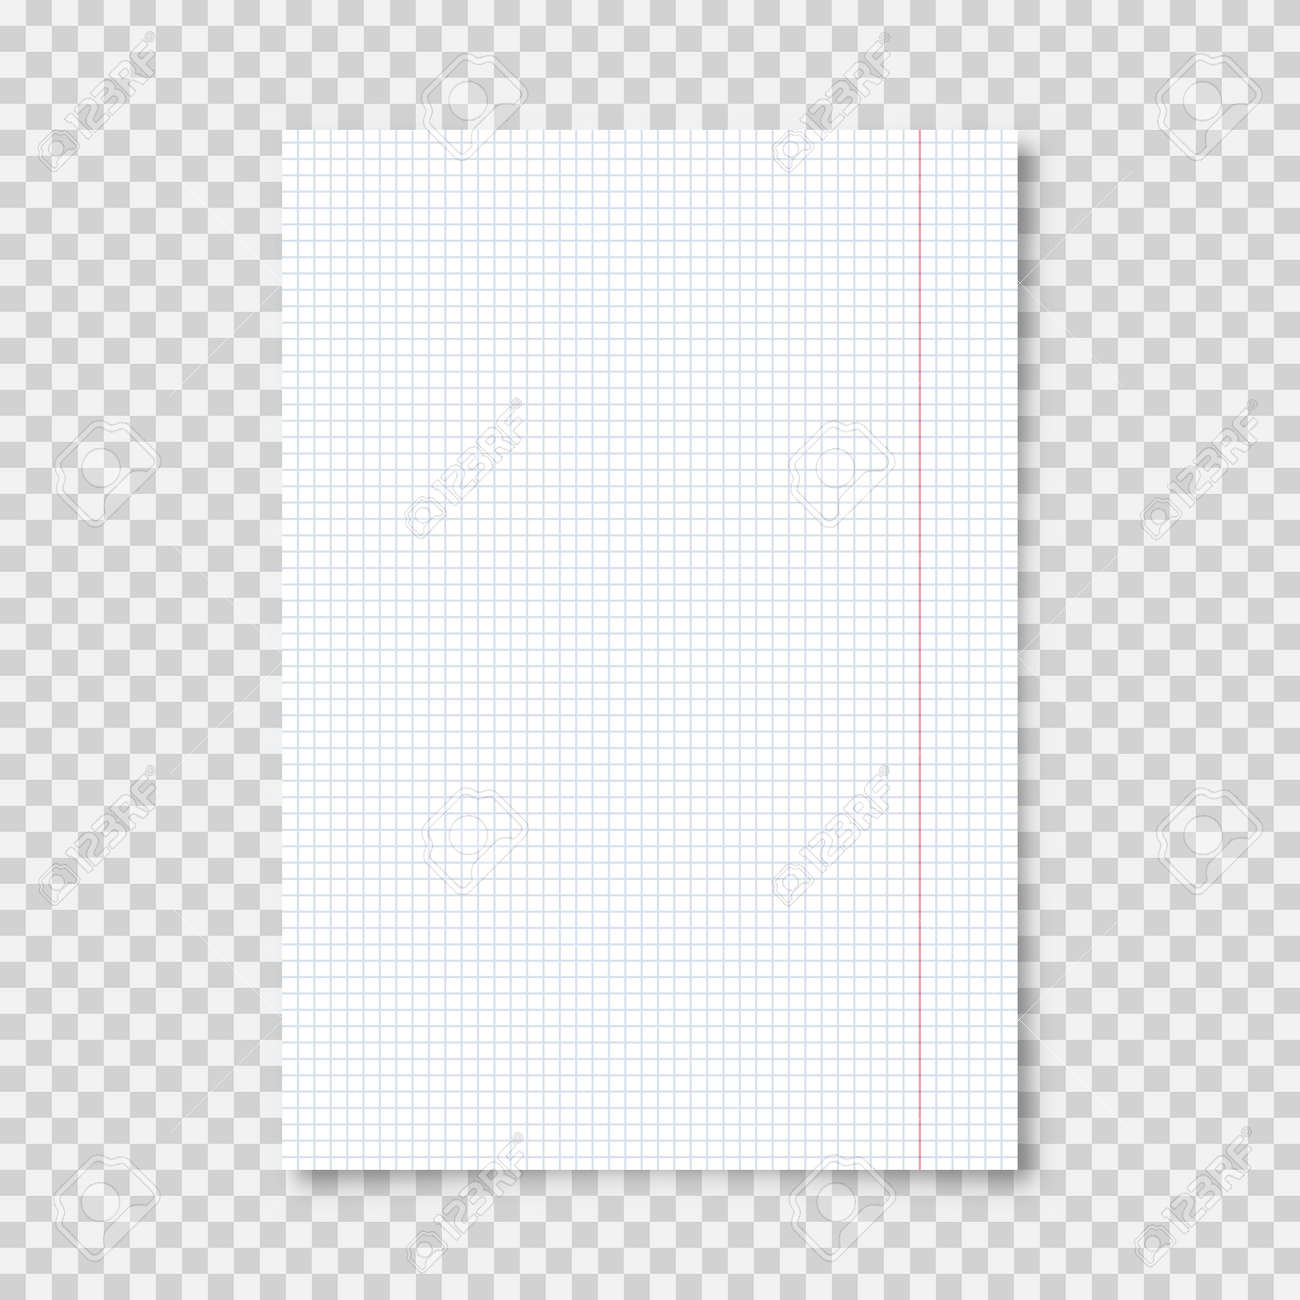 Realistic blank lined paper sheet in A4 format on transparent background. Notebook page, document. Design template or mockup. Vector illustration. - 163312134